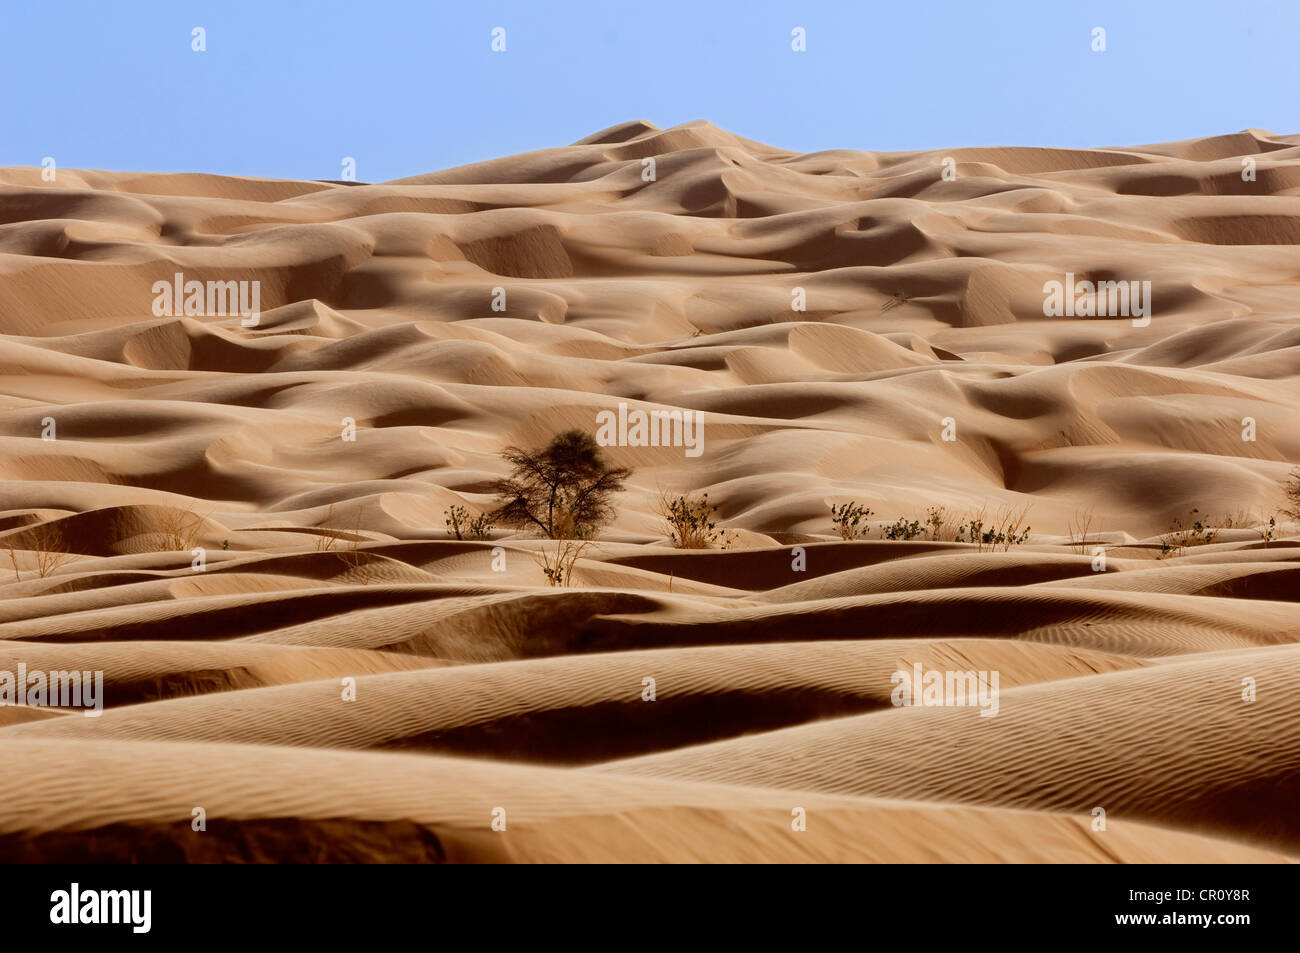 Mauritania, Adrar Region, Akjoujt, landscape of dunes, erg, and its vegetation in the desert of Amatlich - Stock Image